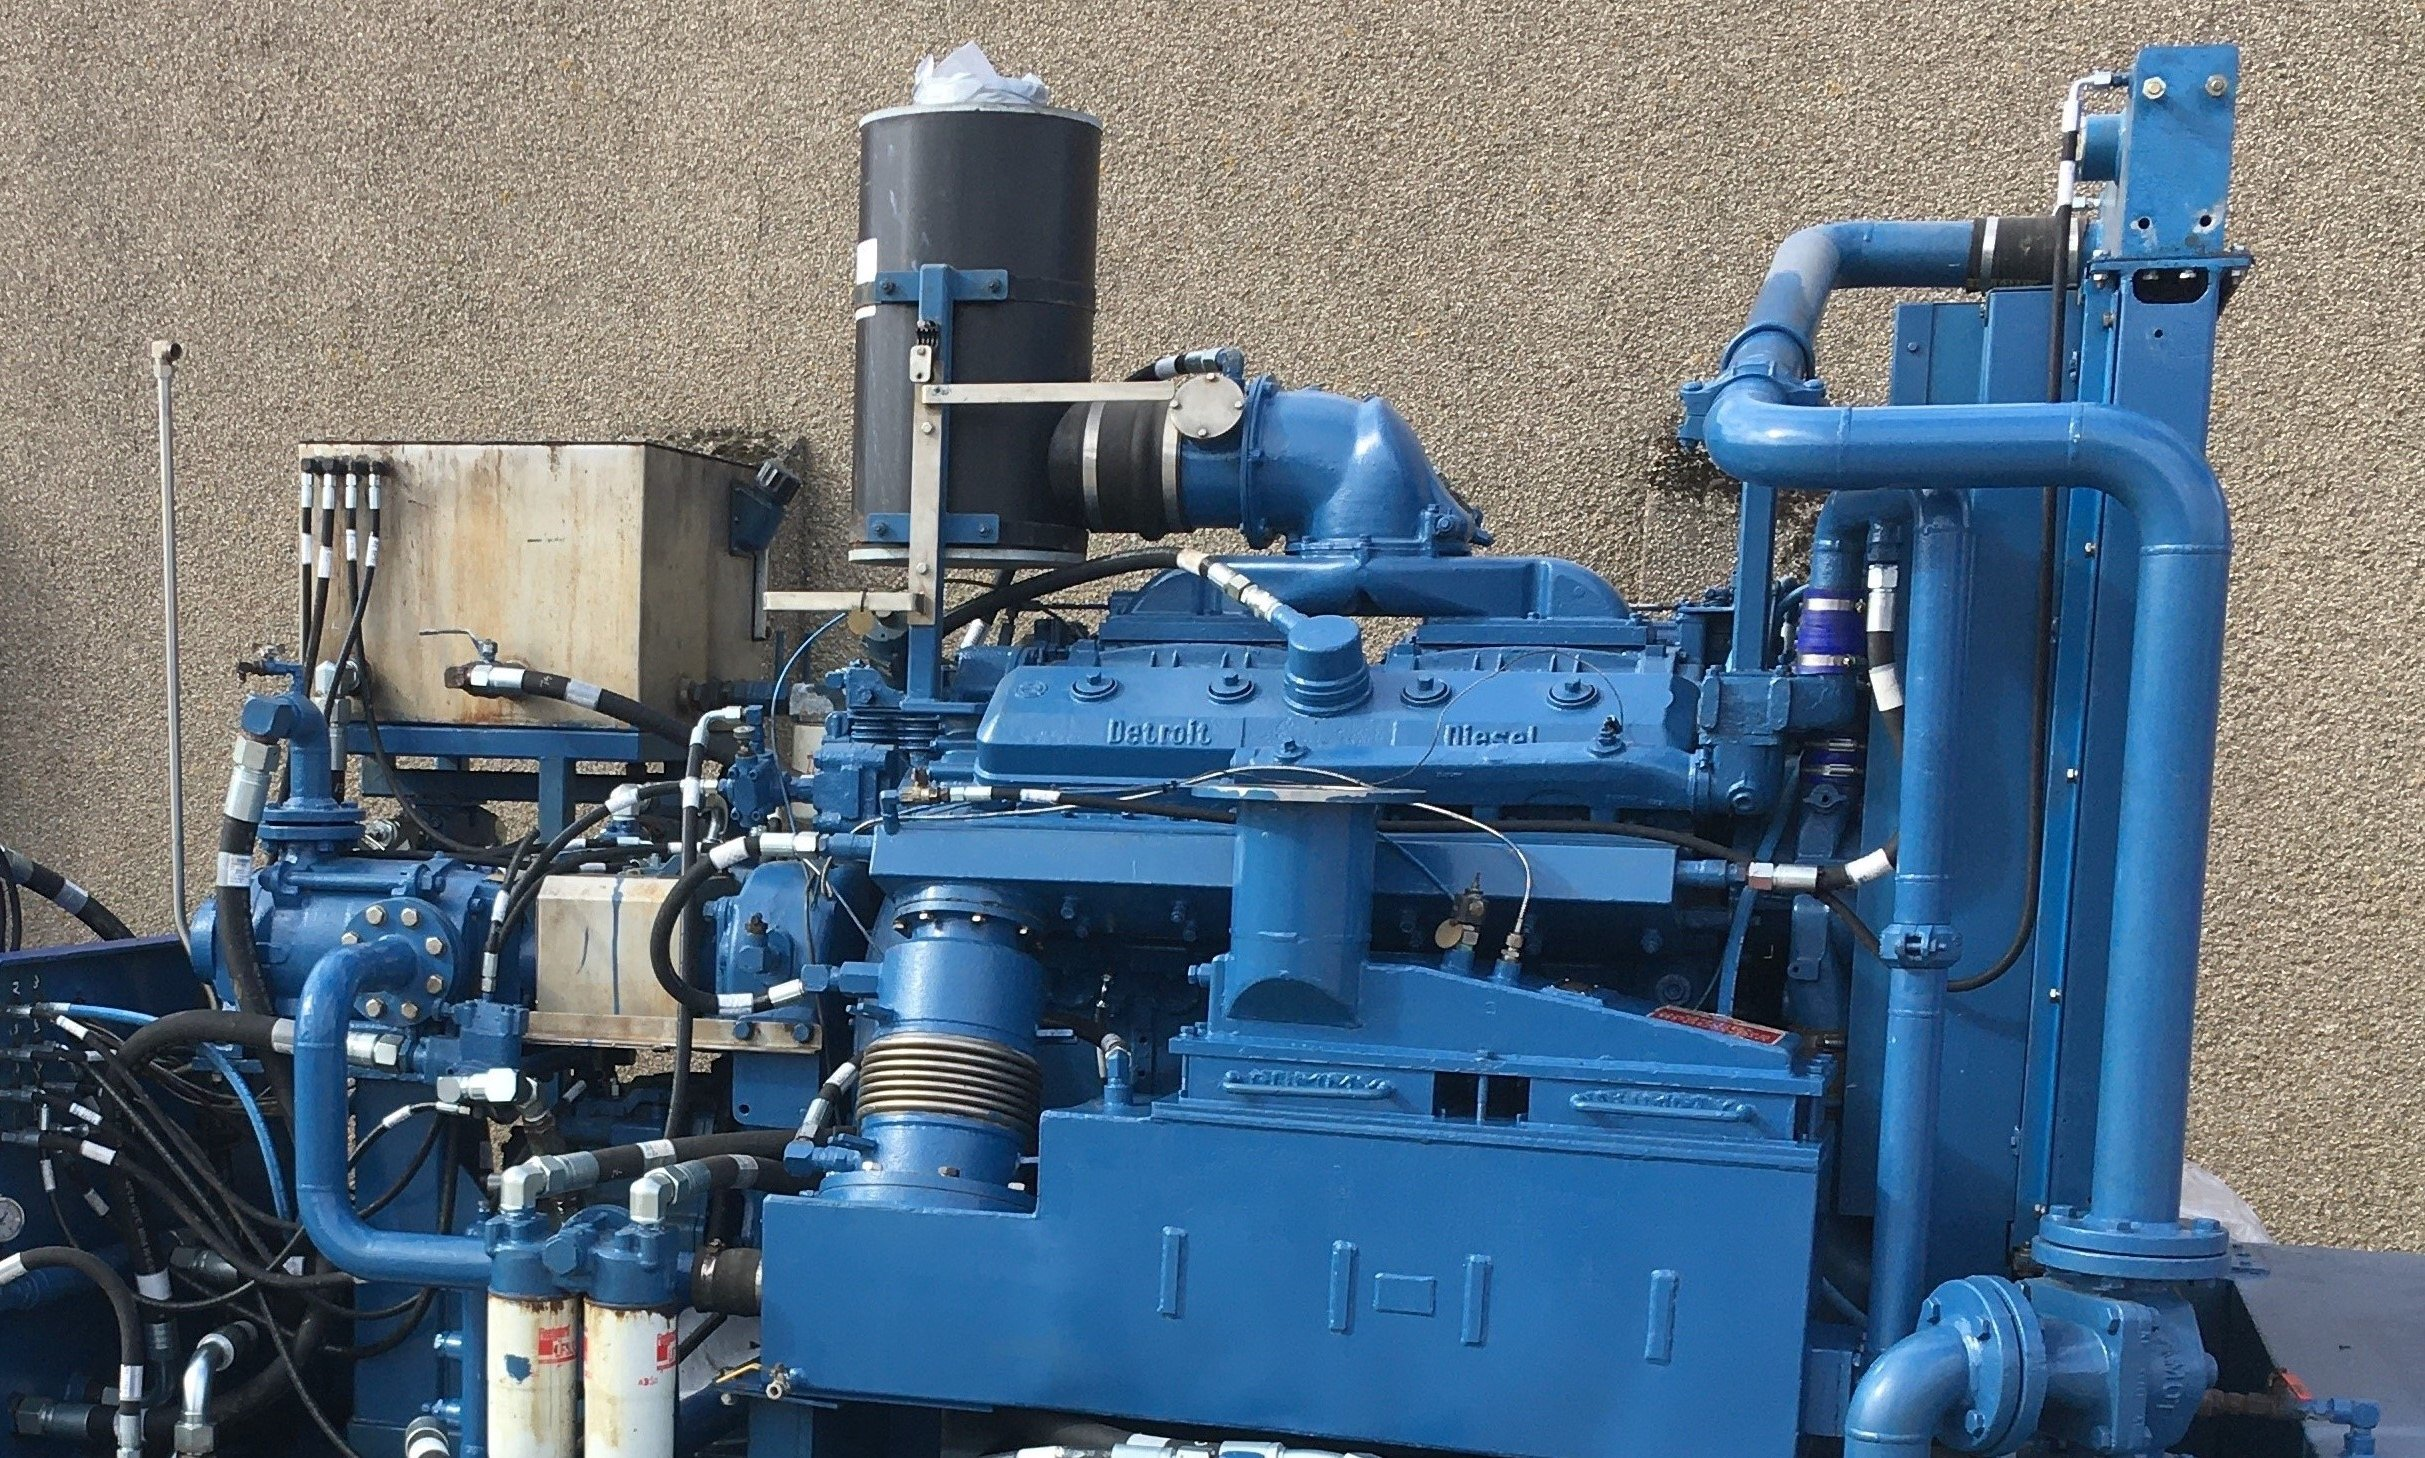 Hiretech Investment Adds Nitrogen Pumps To Rental Offering